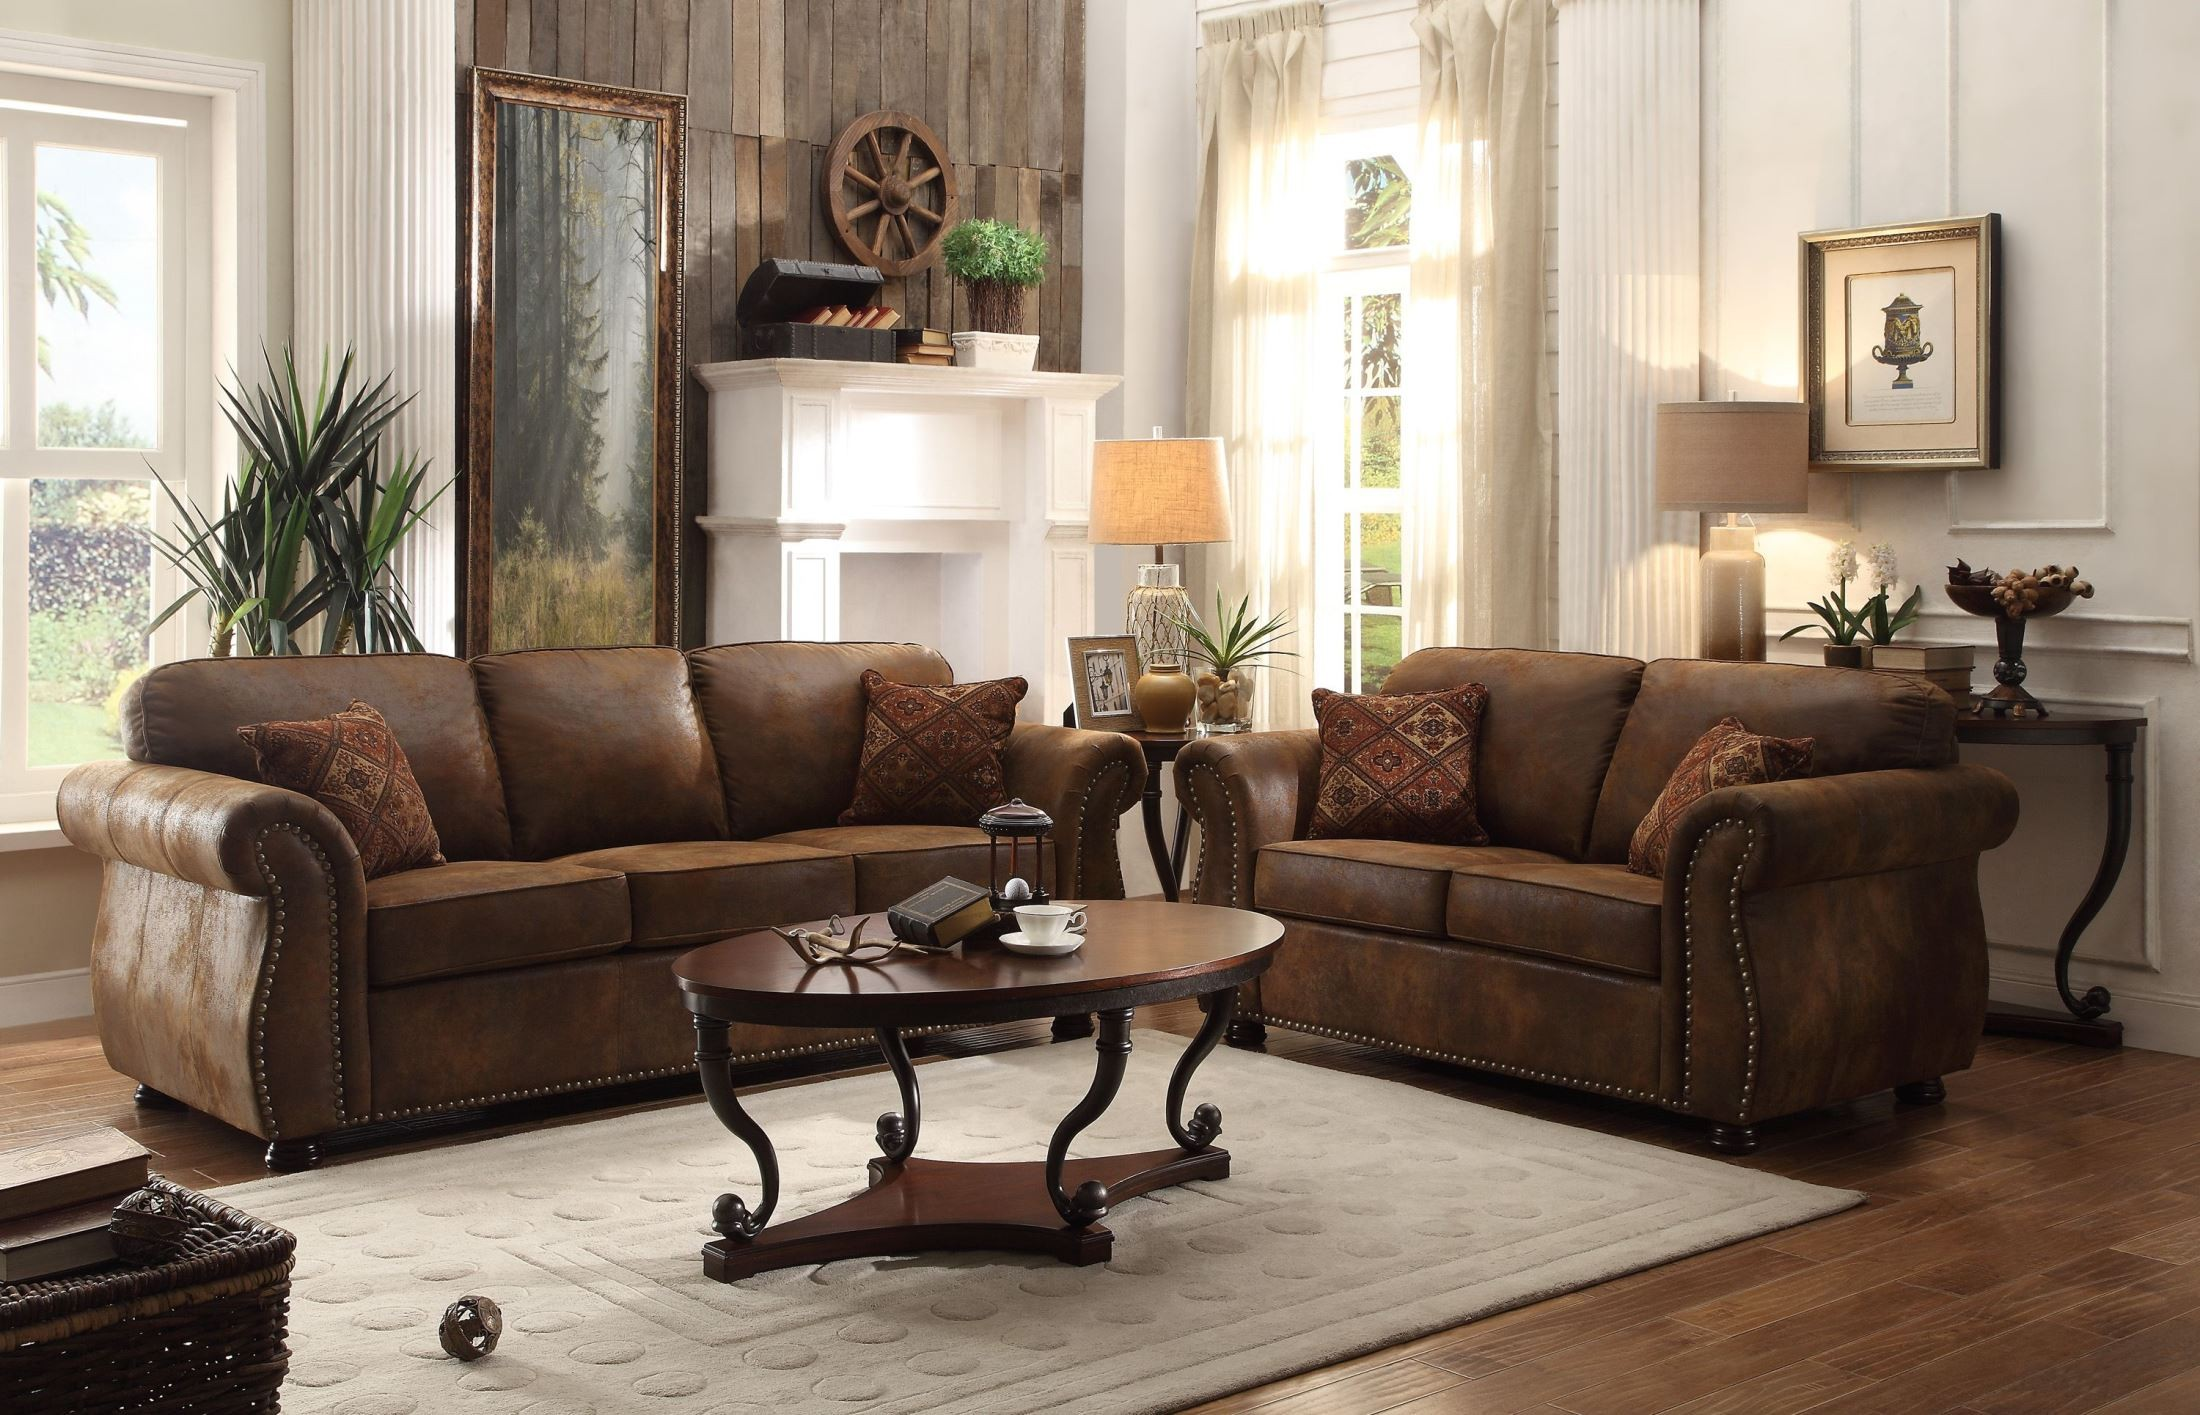 Corvallis brown living room set from homelegance 8405bj 3 for Brown living room furniture